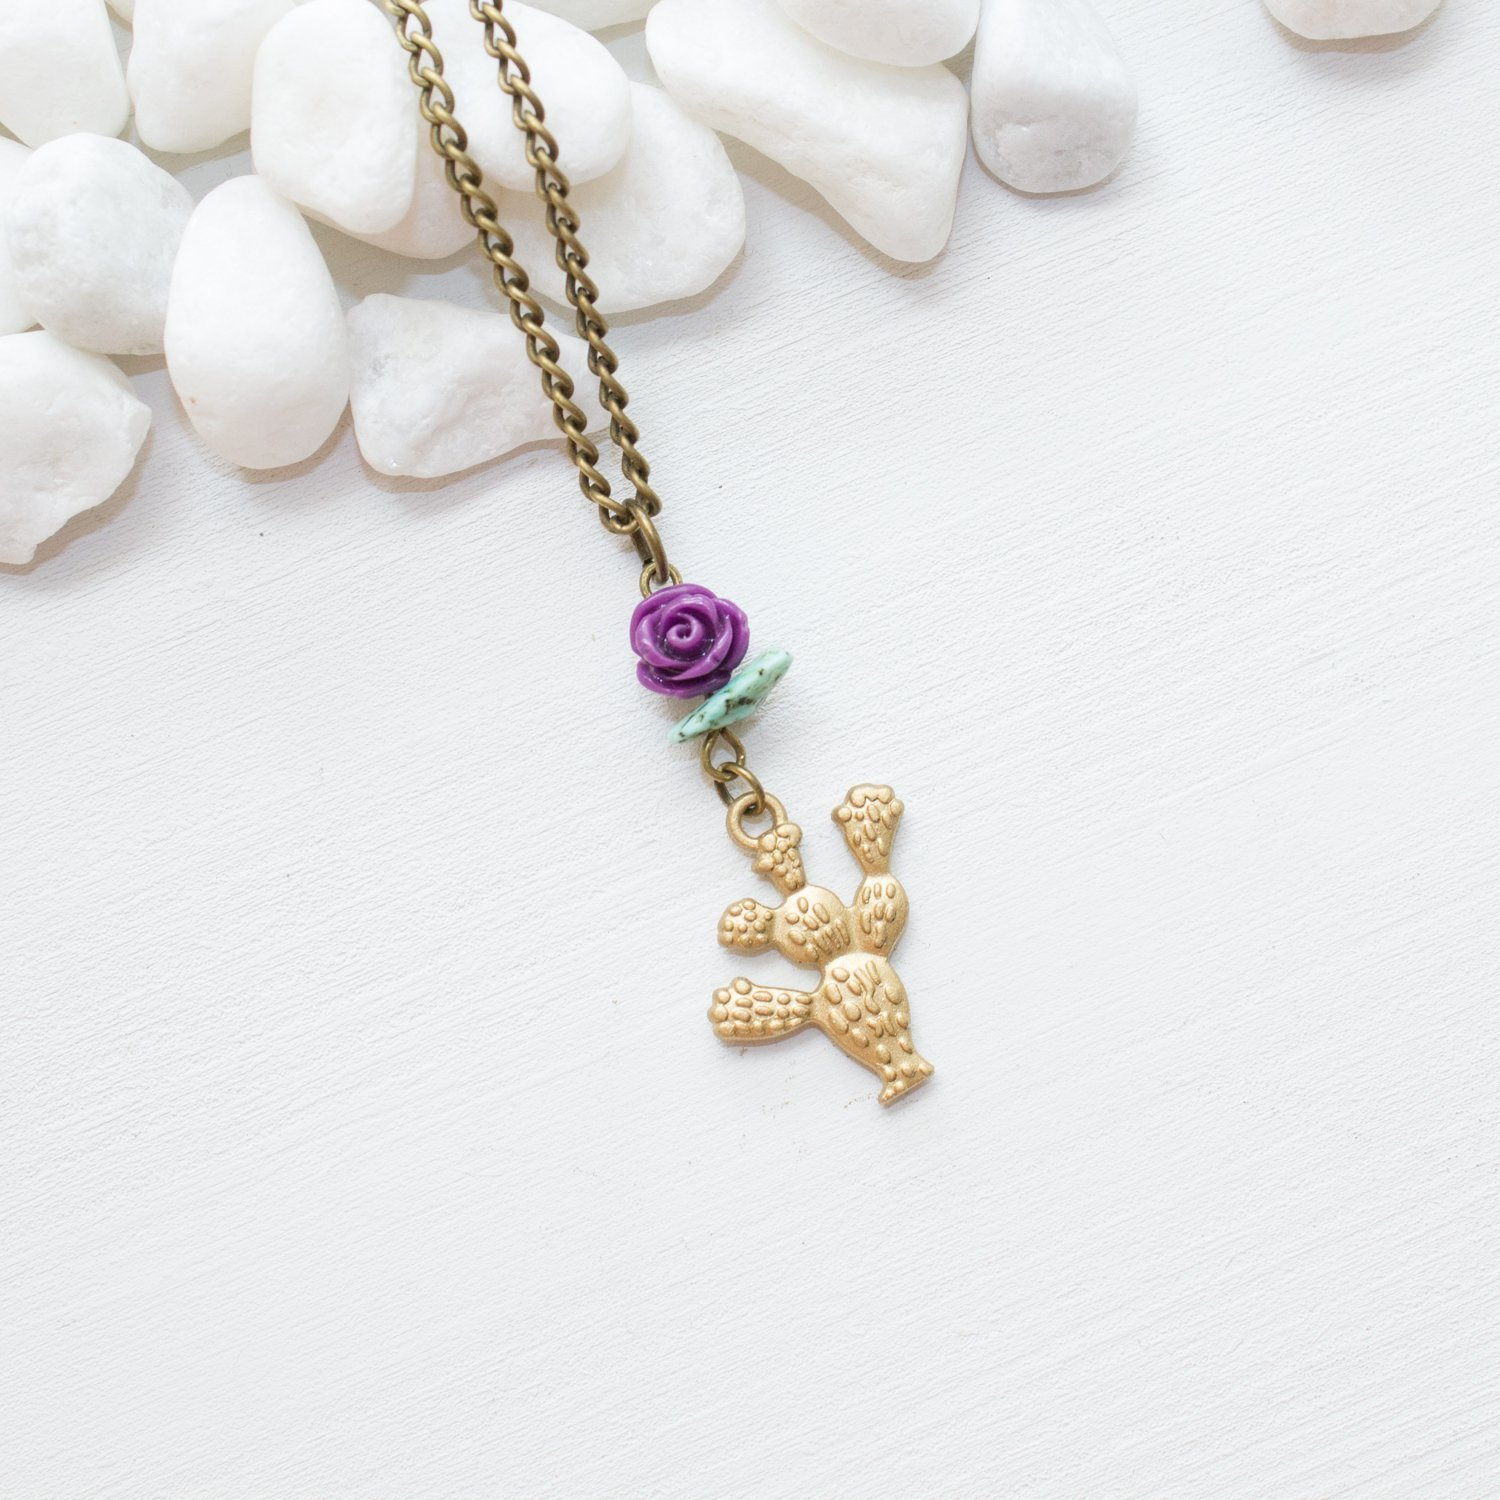 Made in Phoenix AZ Prickly Pear Flowering Cactus Necklace Unique Handmade Purple Flower Southwestern Jewelry